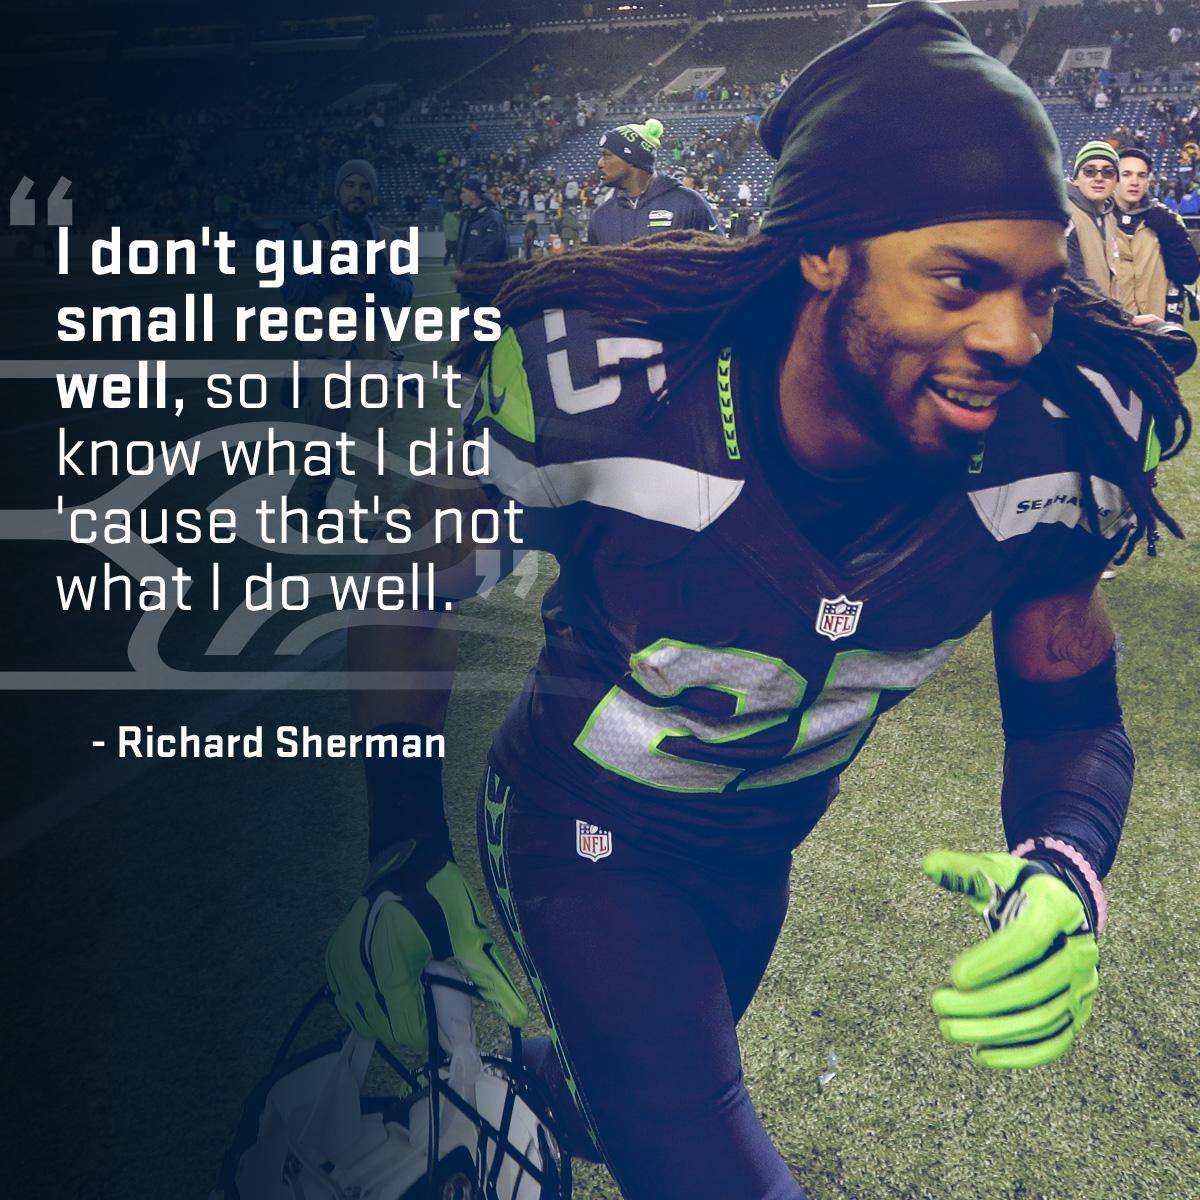 #RichardSherman #Seahawks.- I don't guard small receivers well, so I don't know what I did 'cause that's not what I do well.